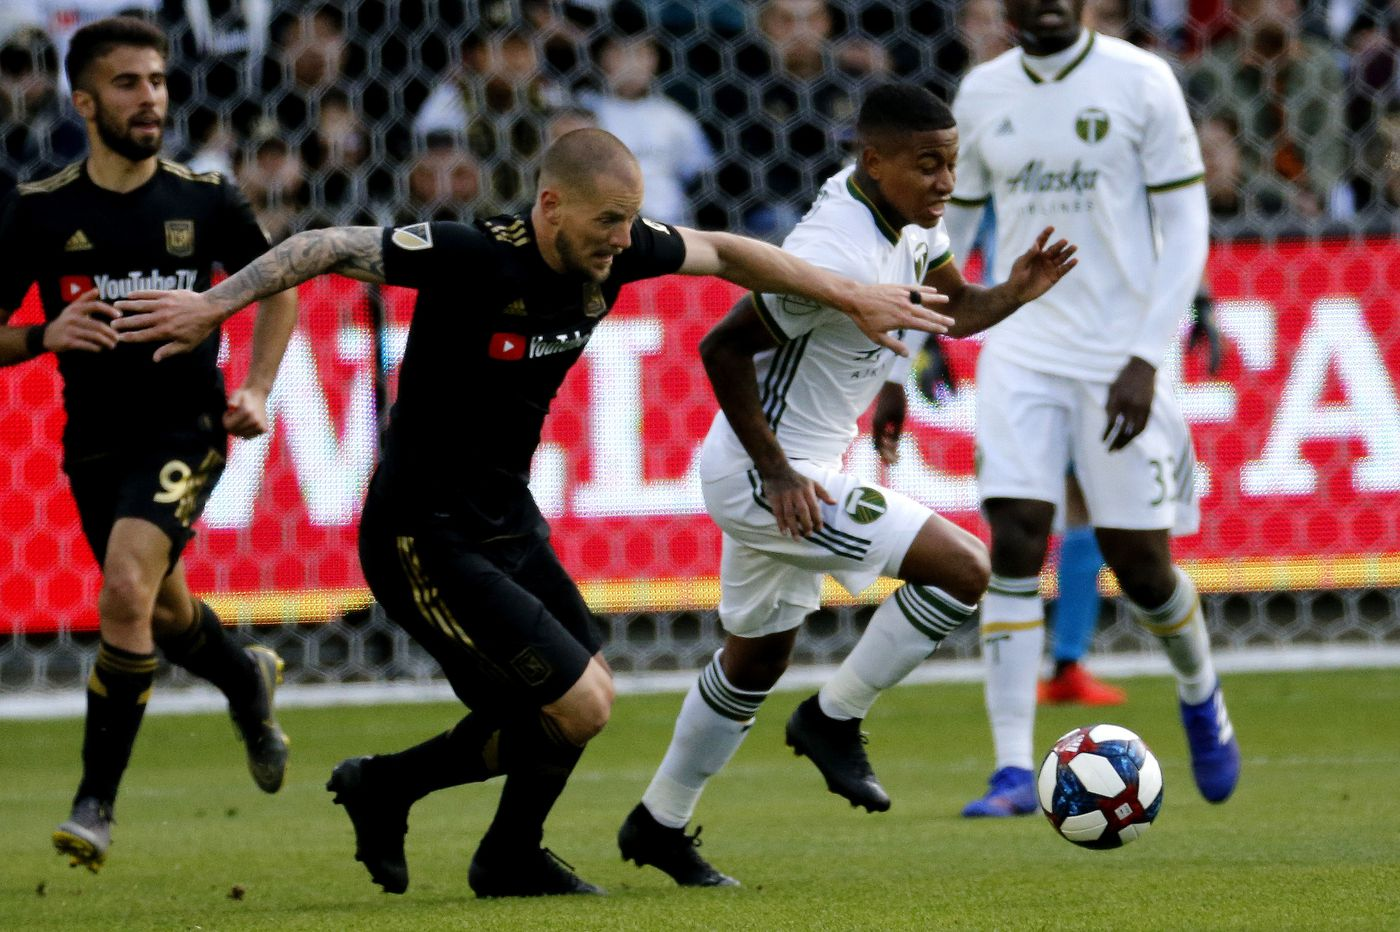 LAFC's Jordan Harvey faces a Union team very different from the one he played for